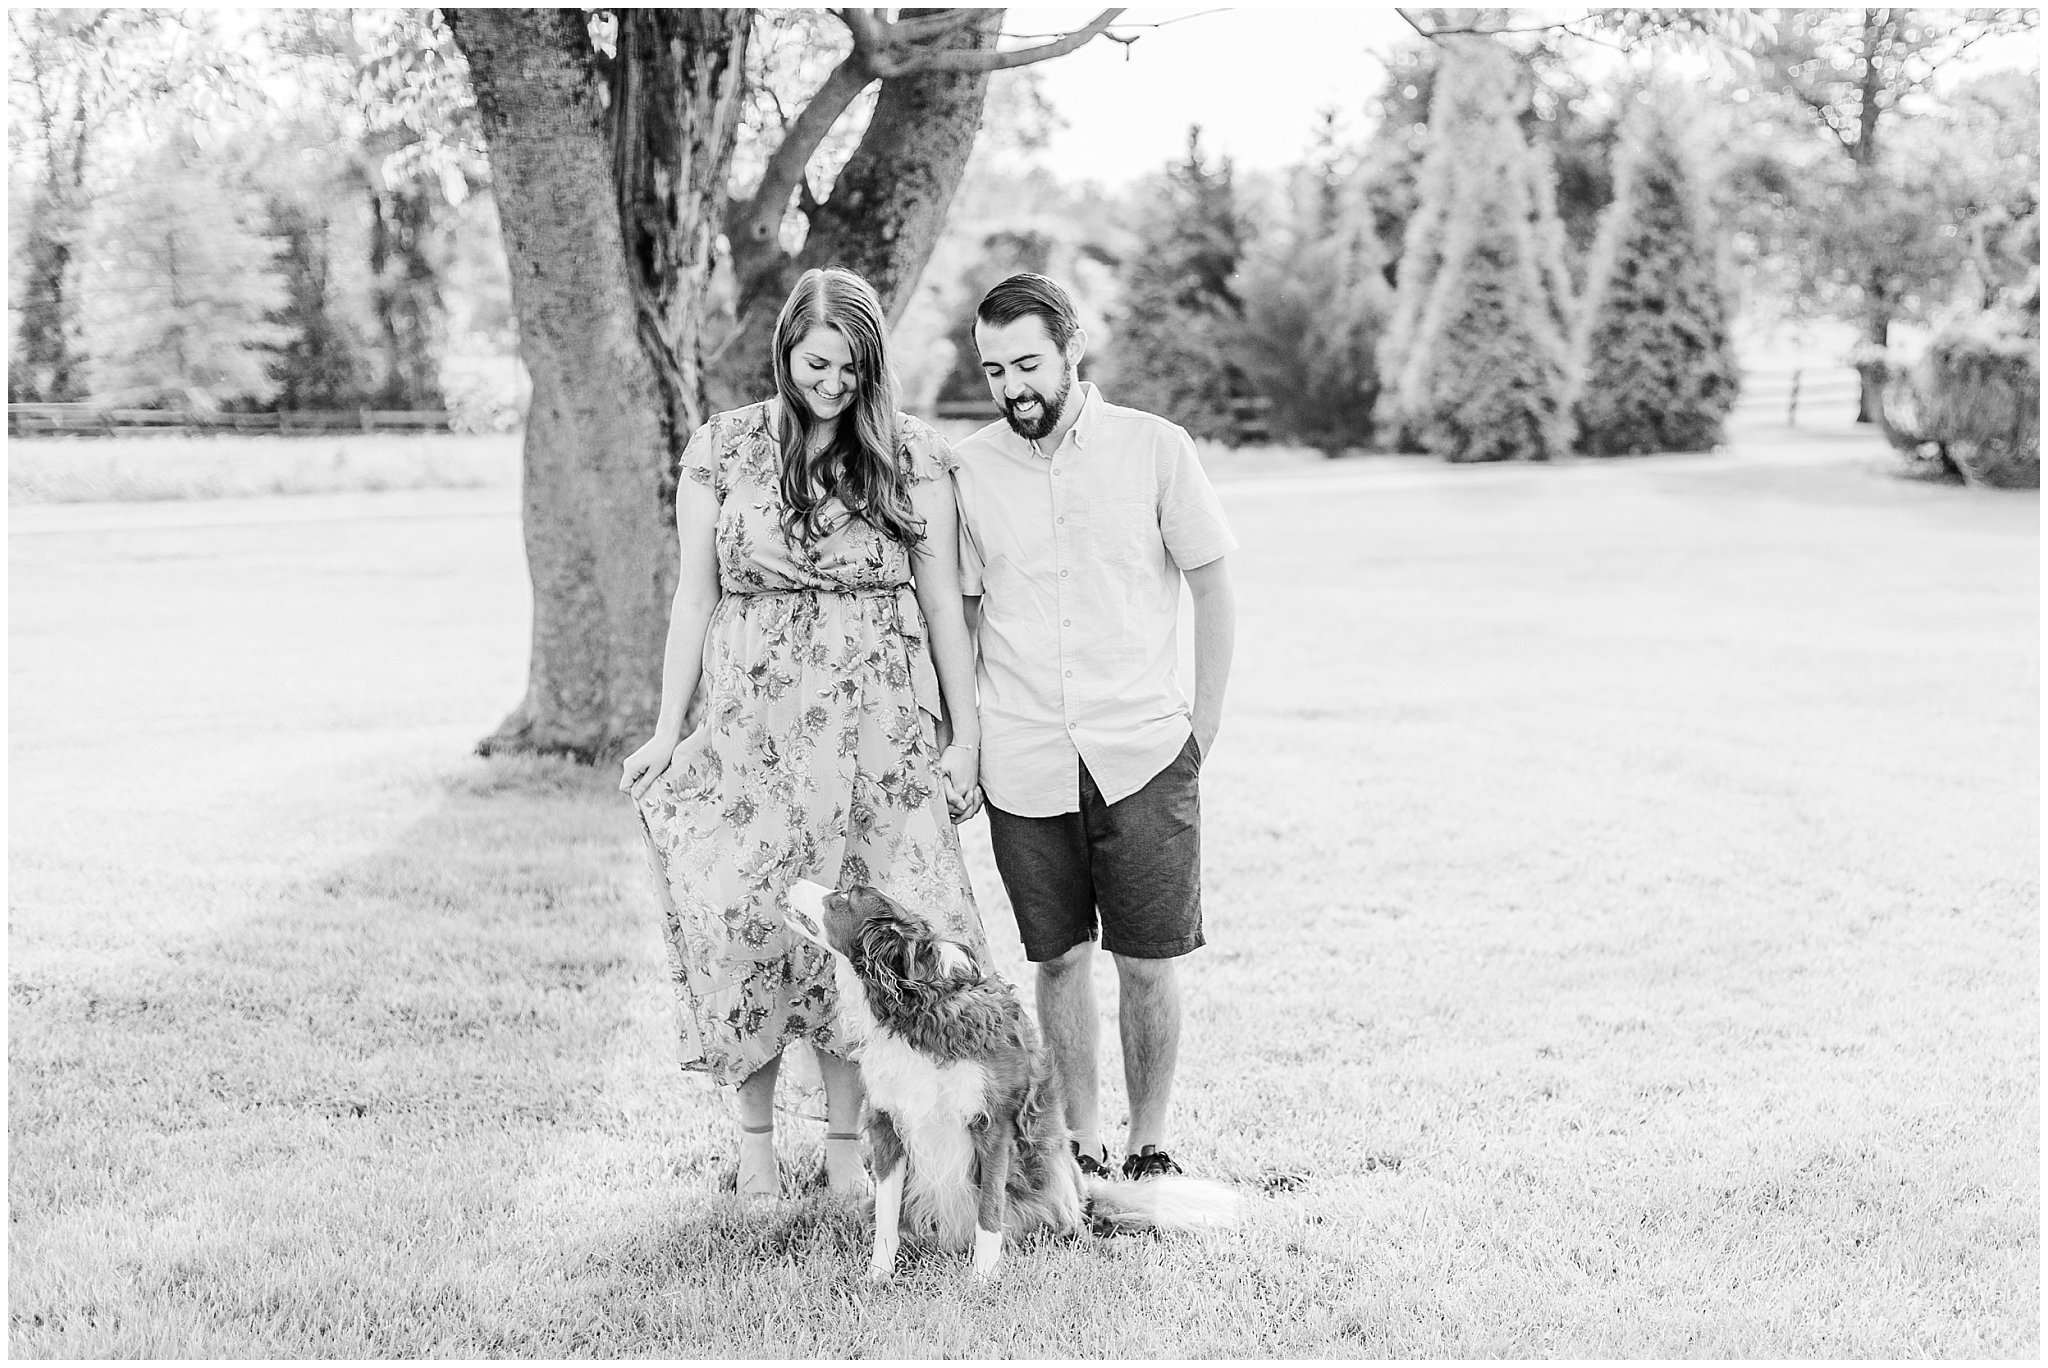 Manor house at prophecy Creek Blue Bell PA wedding venue summertime field engagement session lehigh valley based wedding and lifestyle photographe_0004.jpg